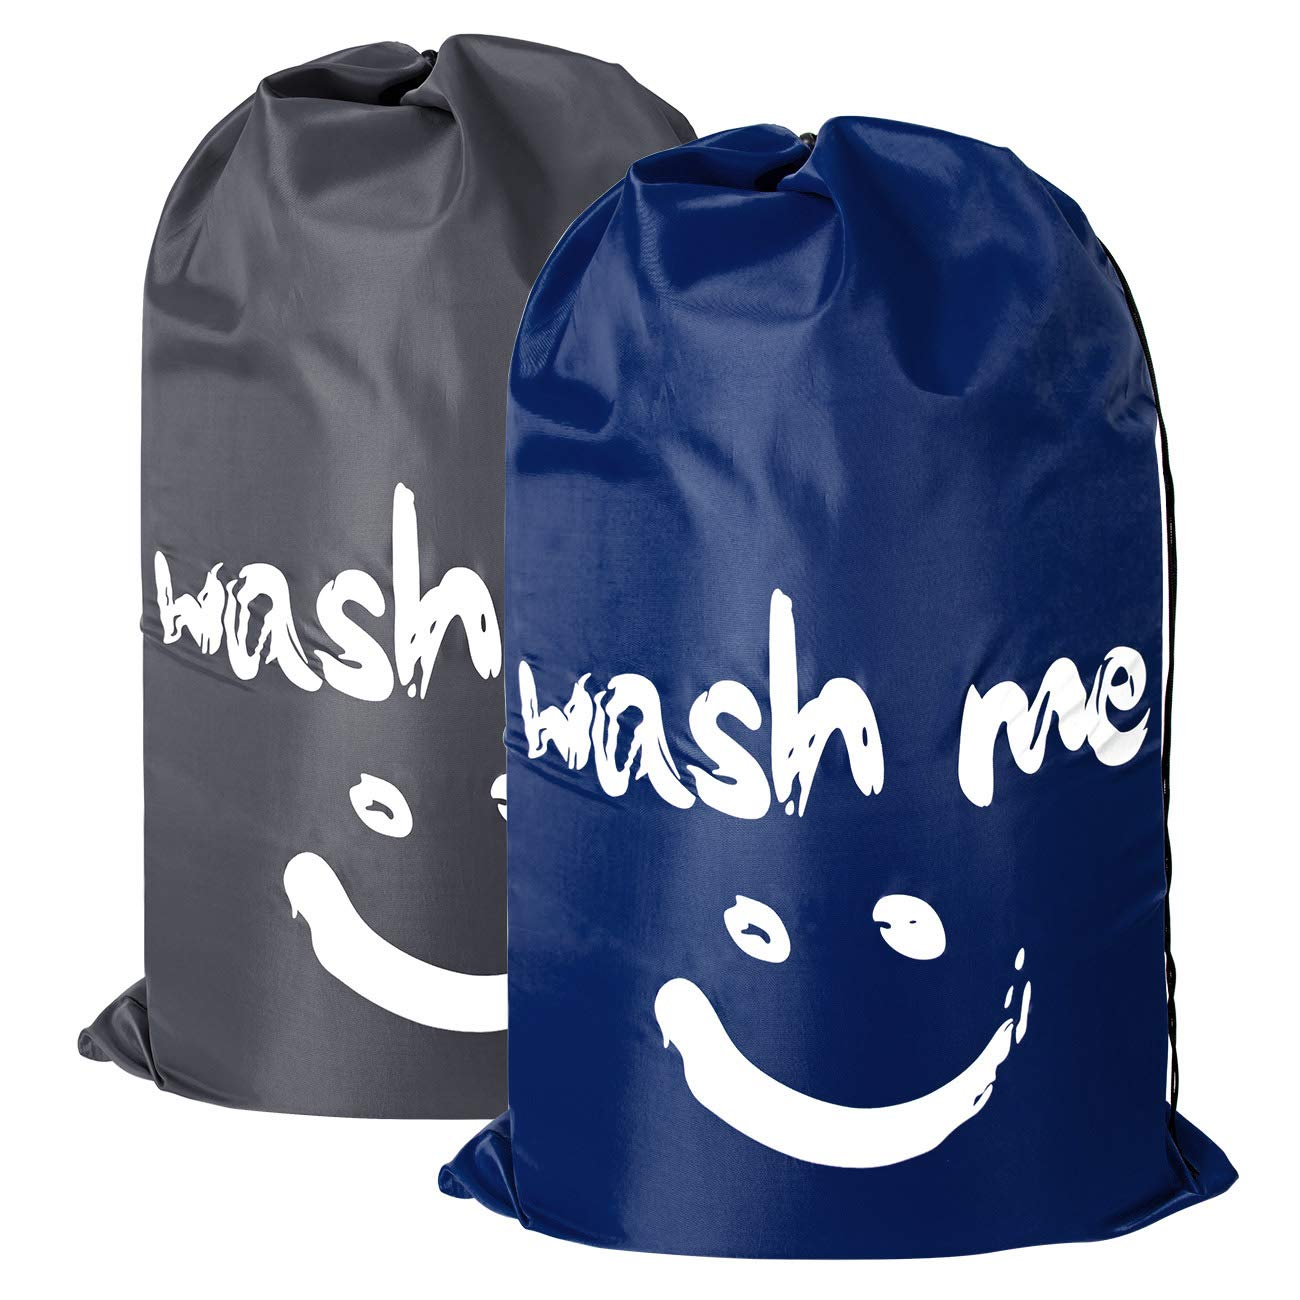 2 Pack Extra Large Travel Laundry Bag Set Nylon Rip-stop Dirty Storage Bag Machine Washable with Drawstring Closure Hamper Liner Heavy Duty College Essentials (Dark Blue and Gray)